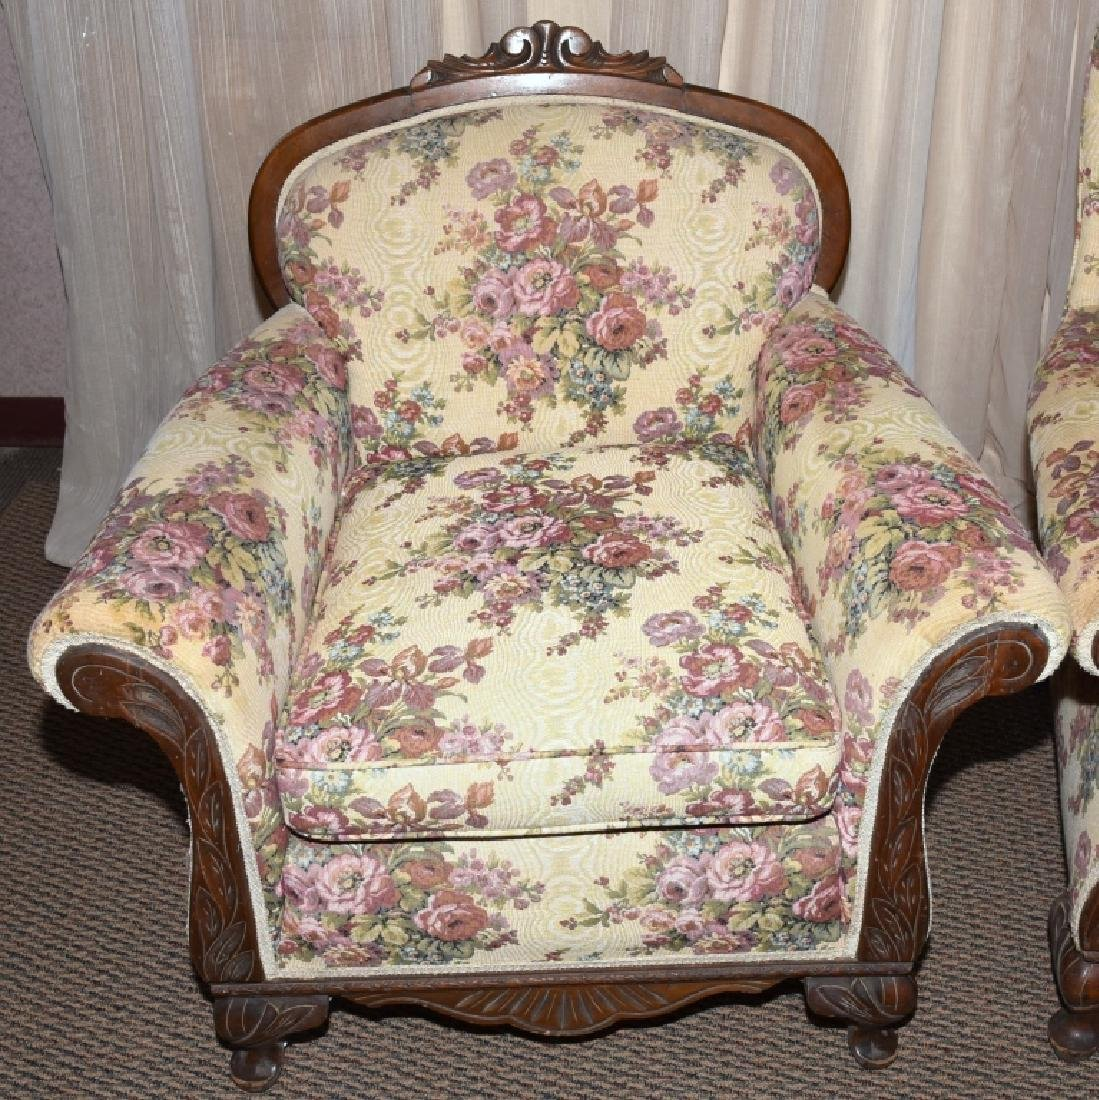 1930s Mr. & Mrs. Upholstered Chairs - 2